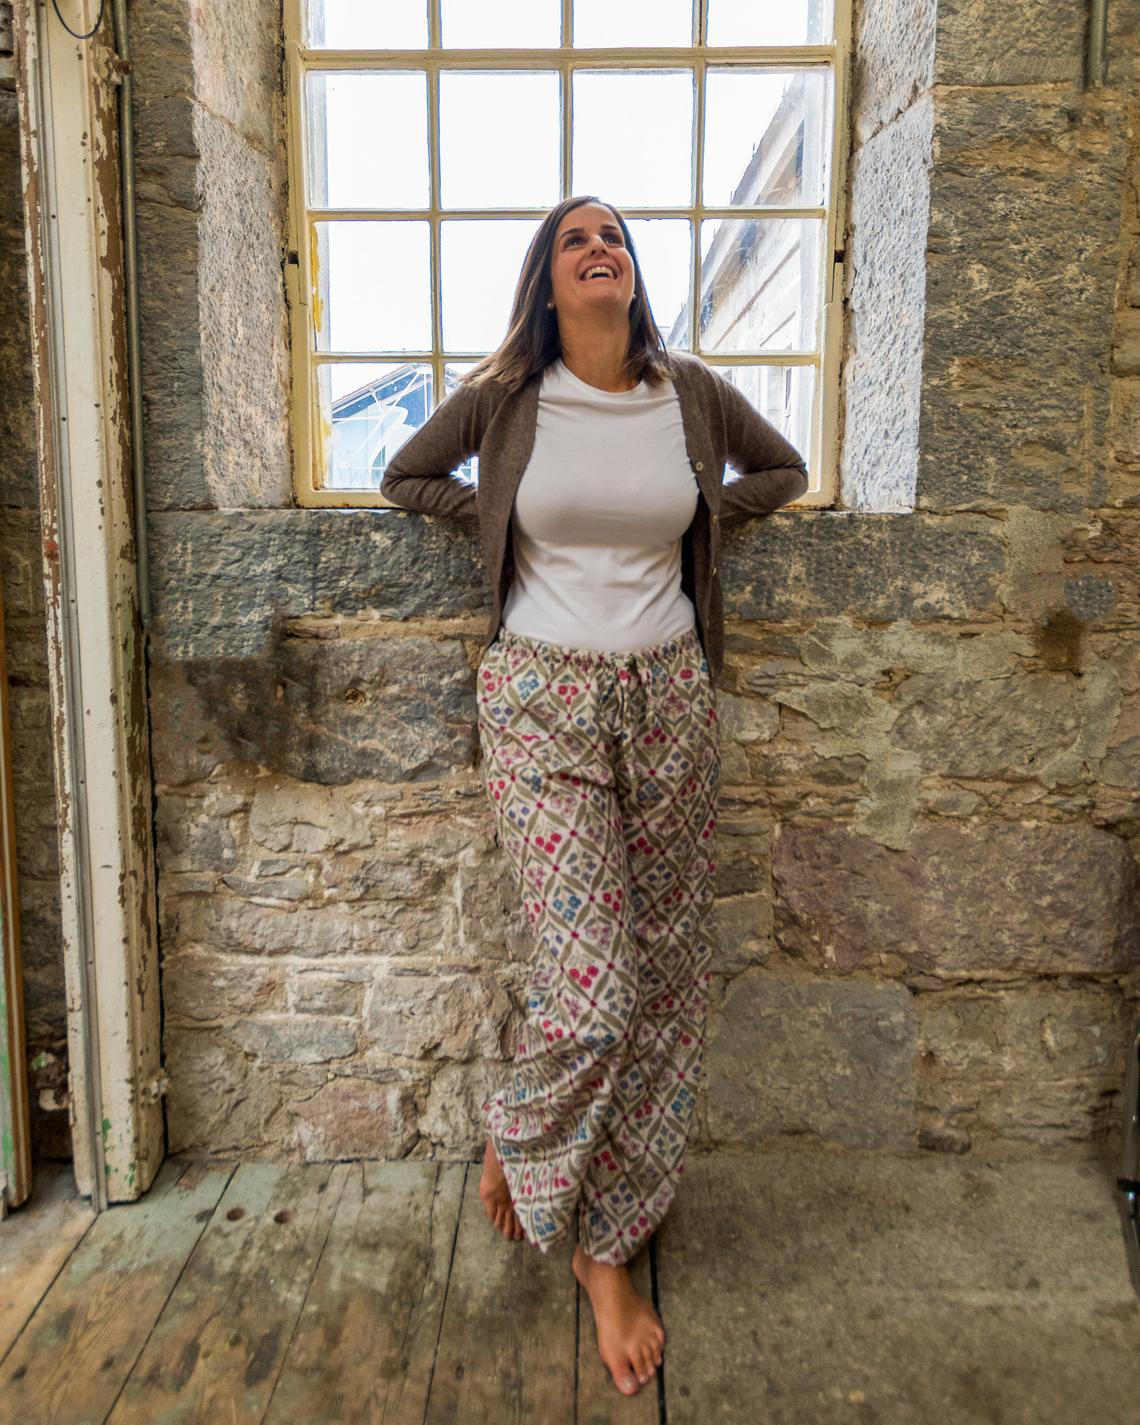 Ladies Pyjama Bottoms in Beige with Floral Pattern, Elasticated Waist Pajama Pants with Drawstring Waist, Relaxed Fit PJ Bottoms for Women